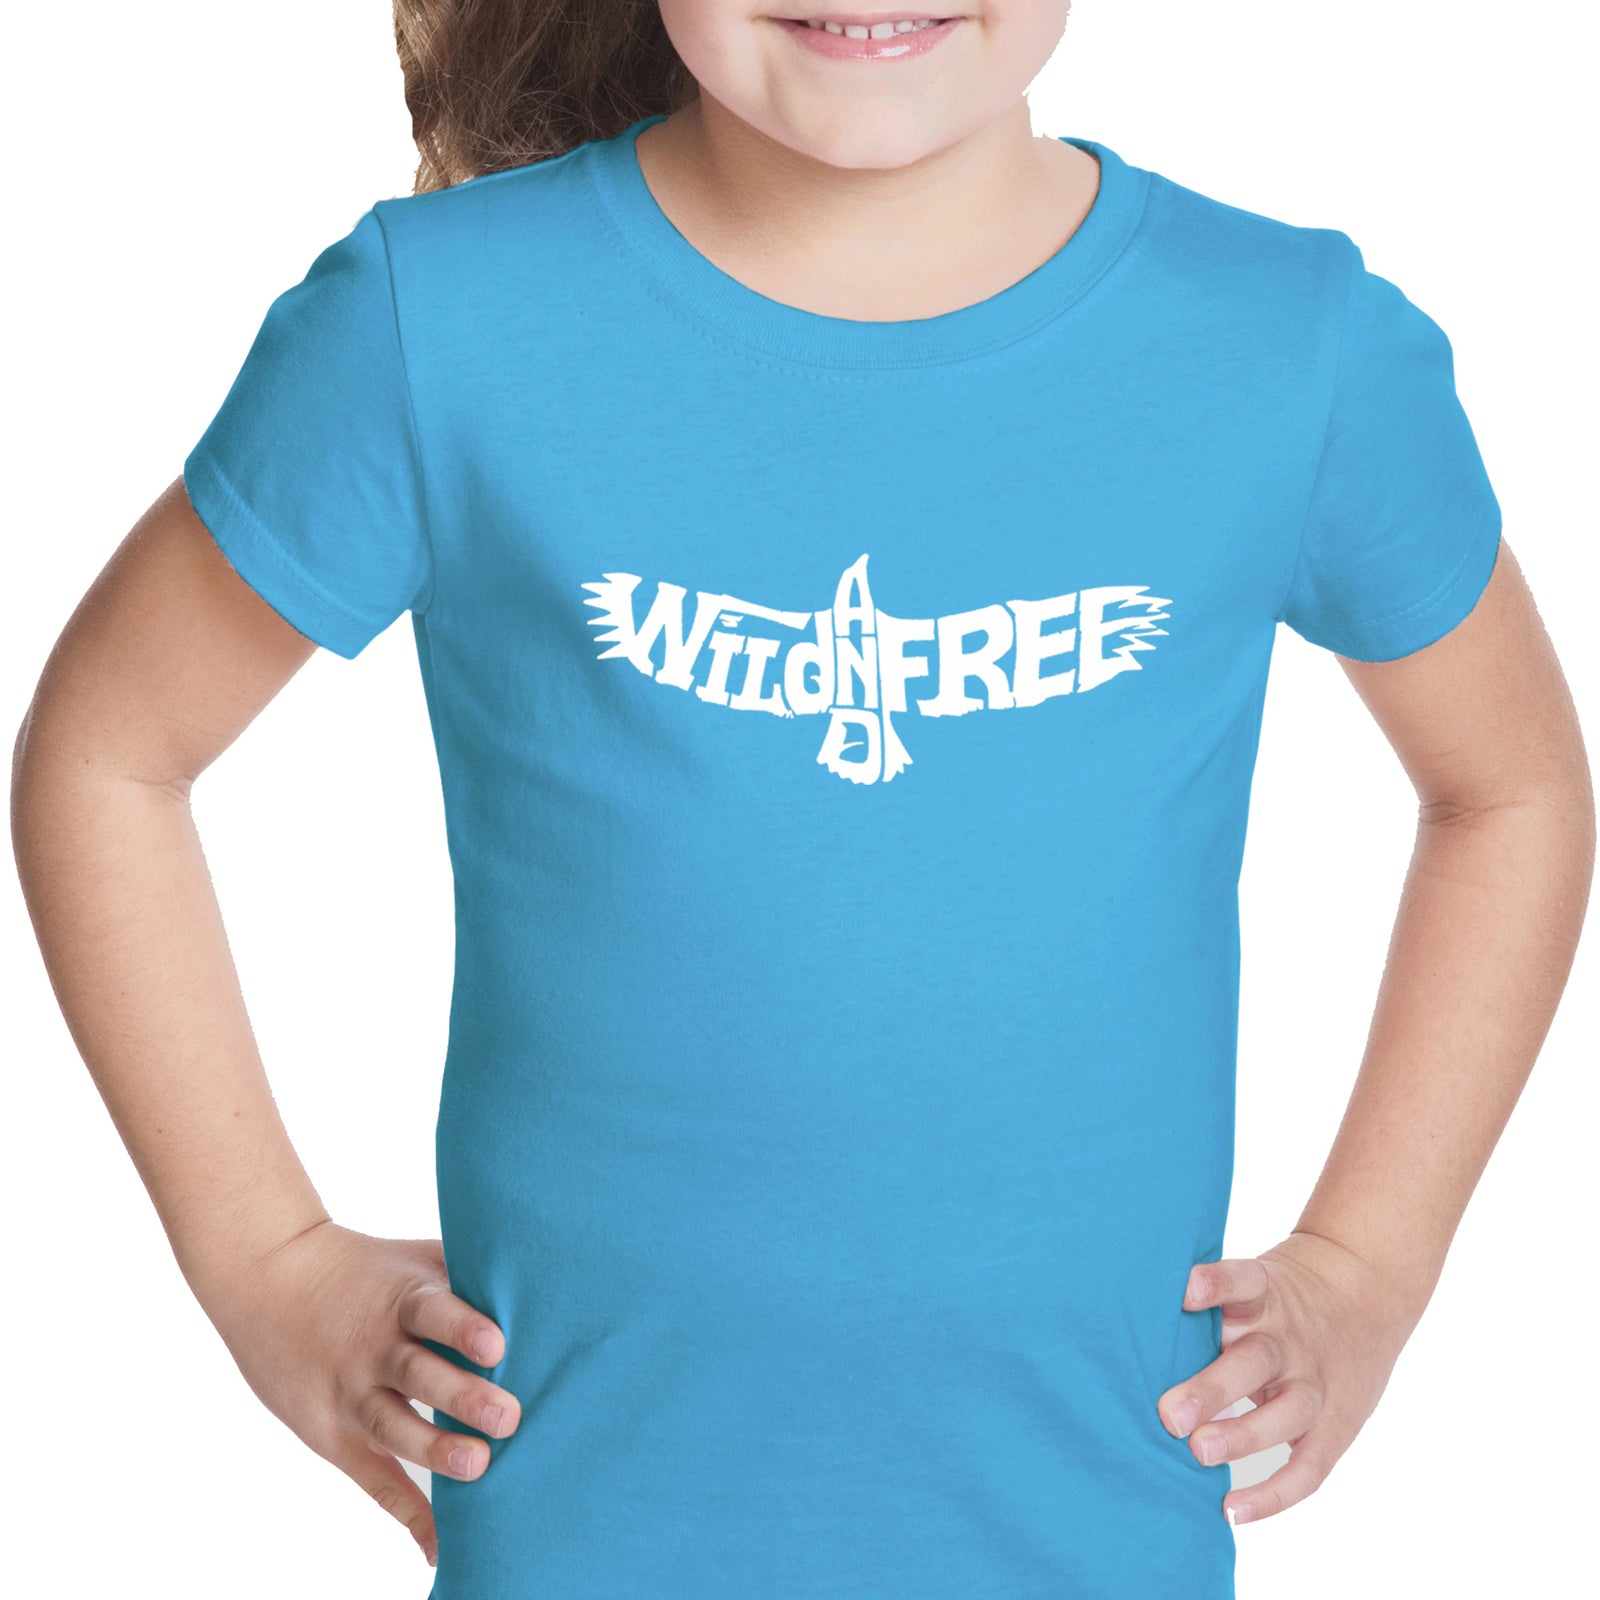 Girl's Word Art T-shirt - Wild and Free Eagle